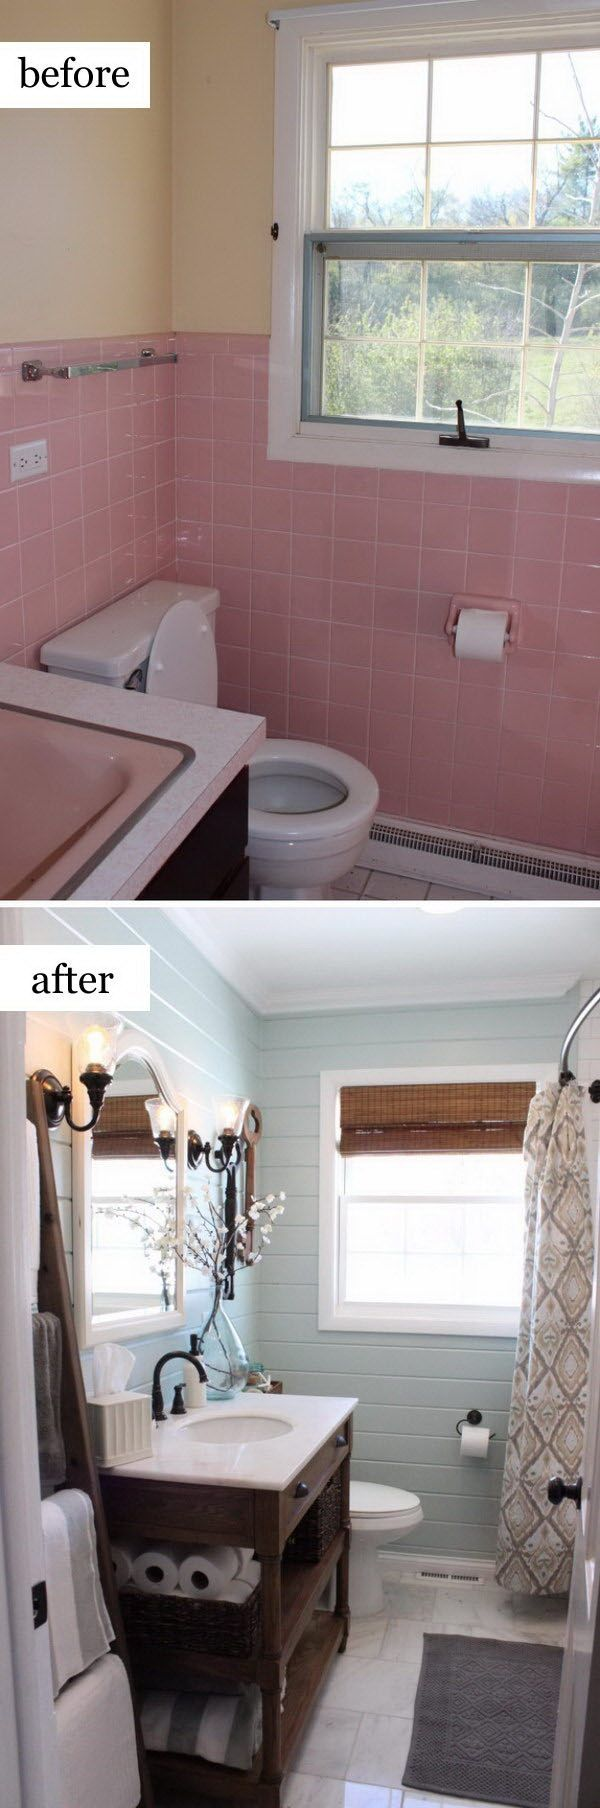 Before and after makeovers 23 most beautiful bathroom remodeling ideas